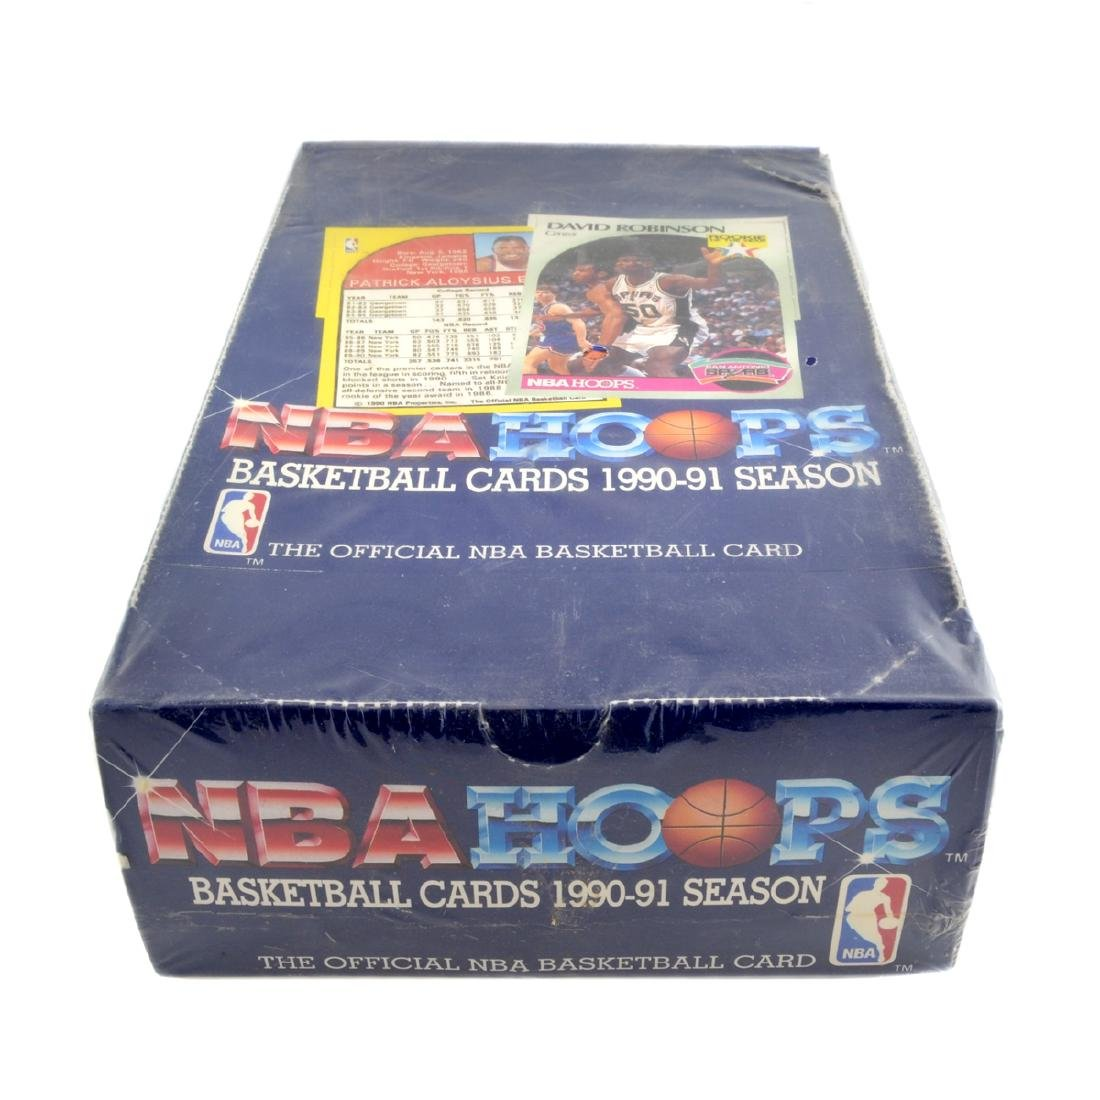 1990 - 91 Season NBA Hoops Basketball Card Set (Unopen)